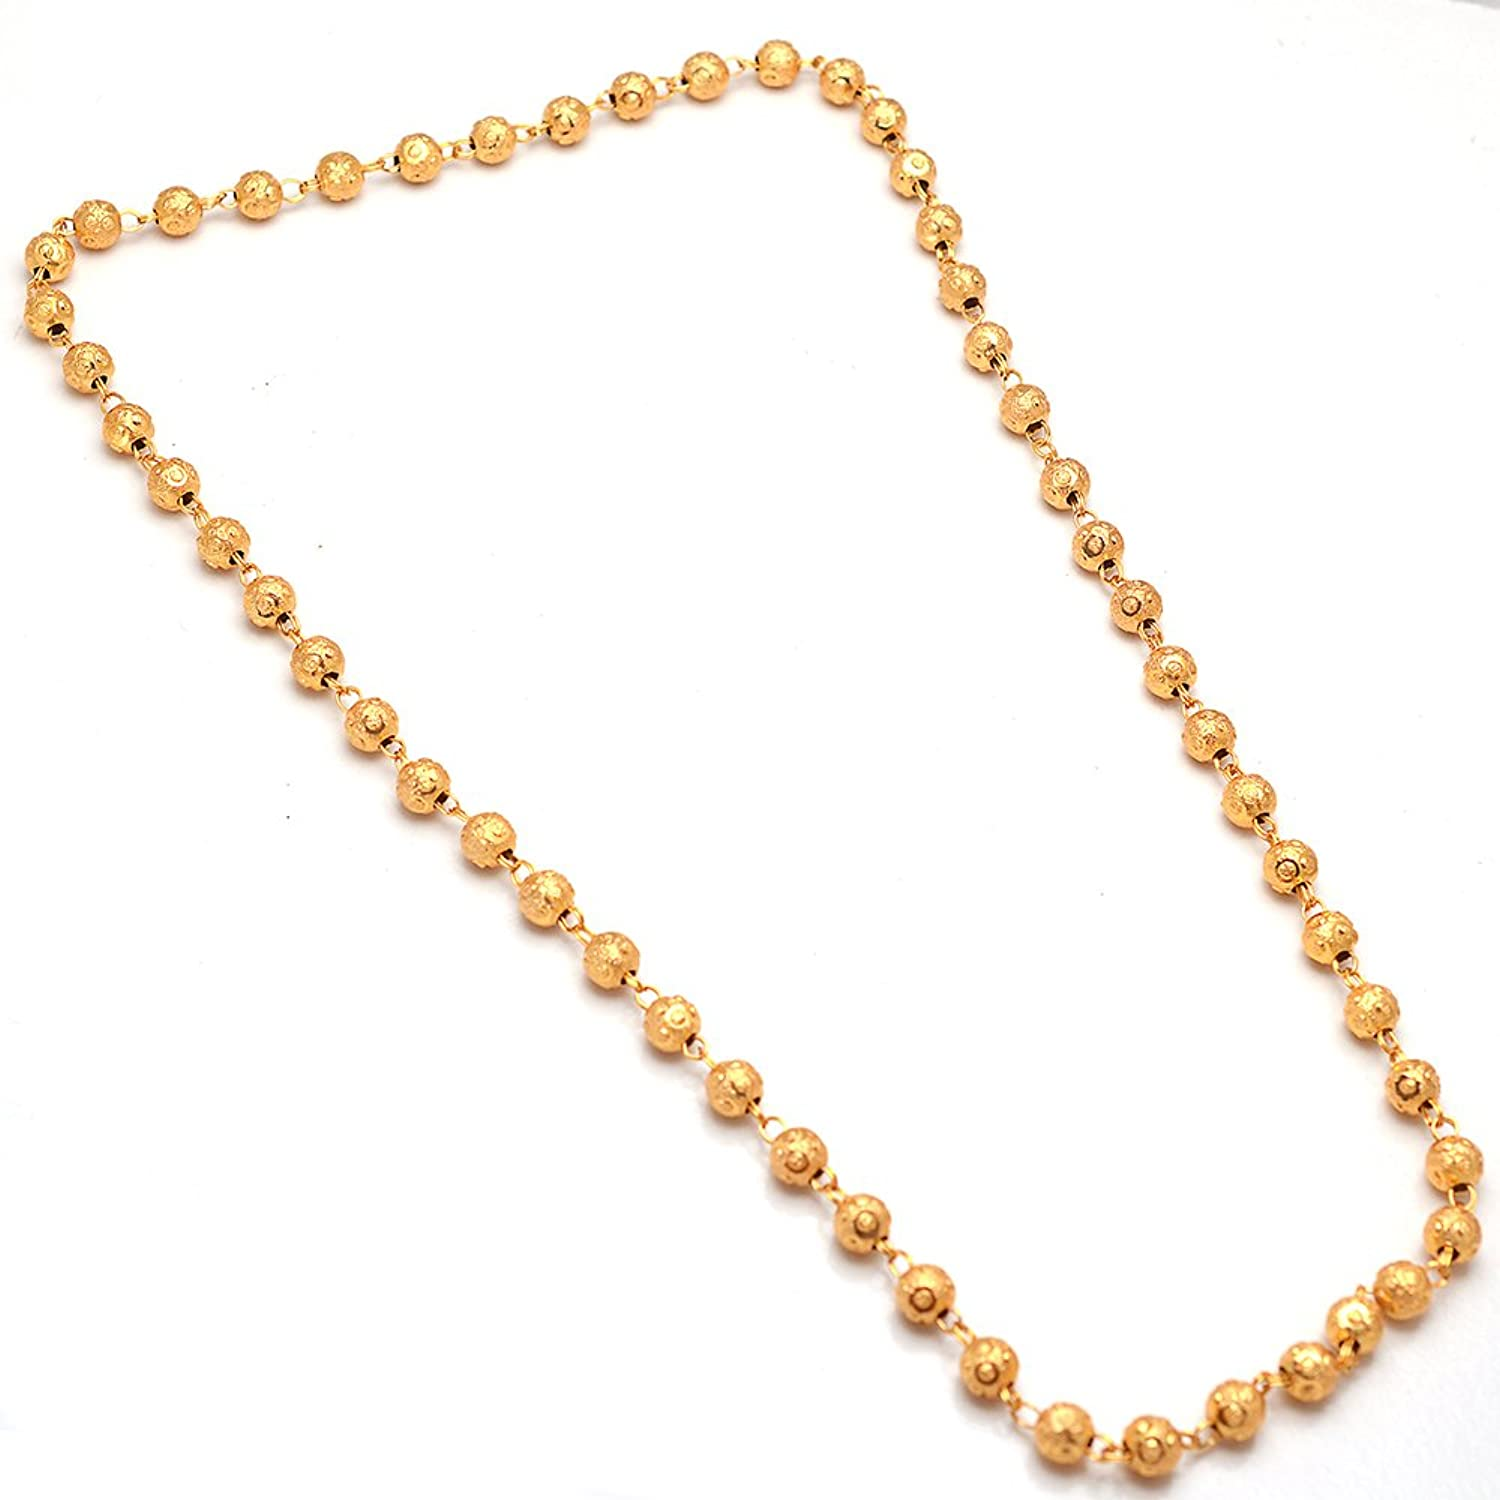 chains yellow gold rosary necklace inch pin ladies